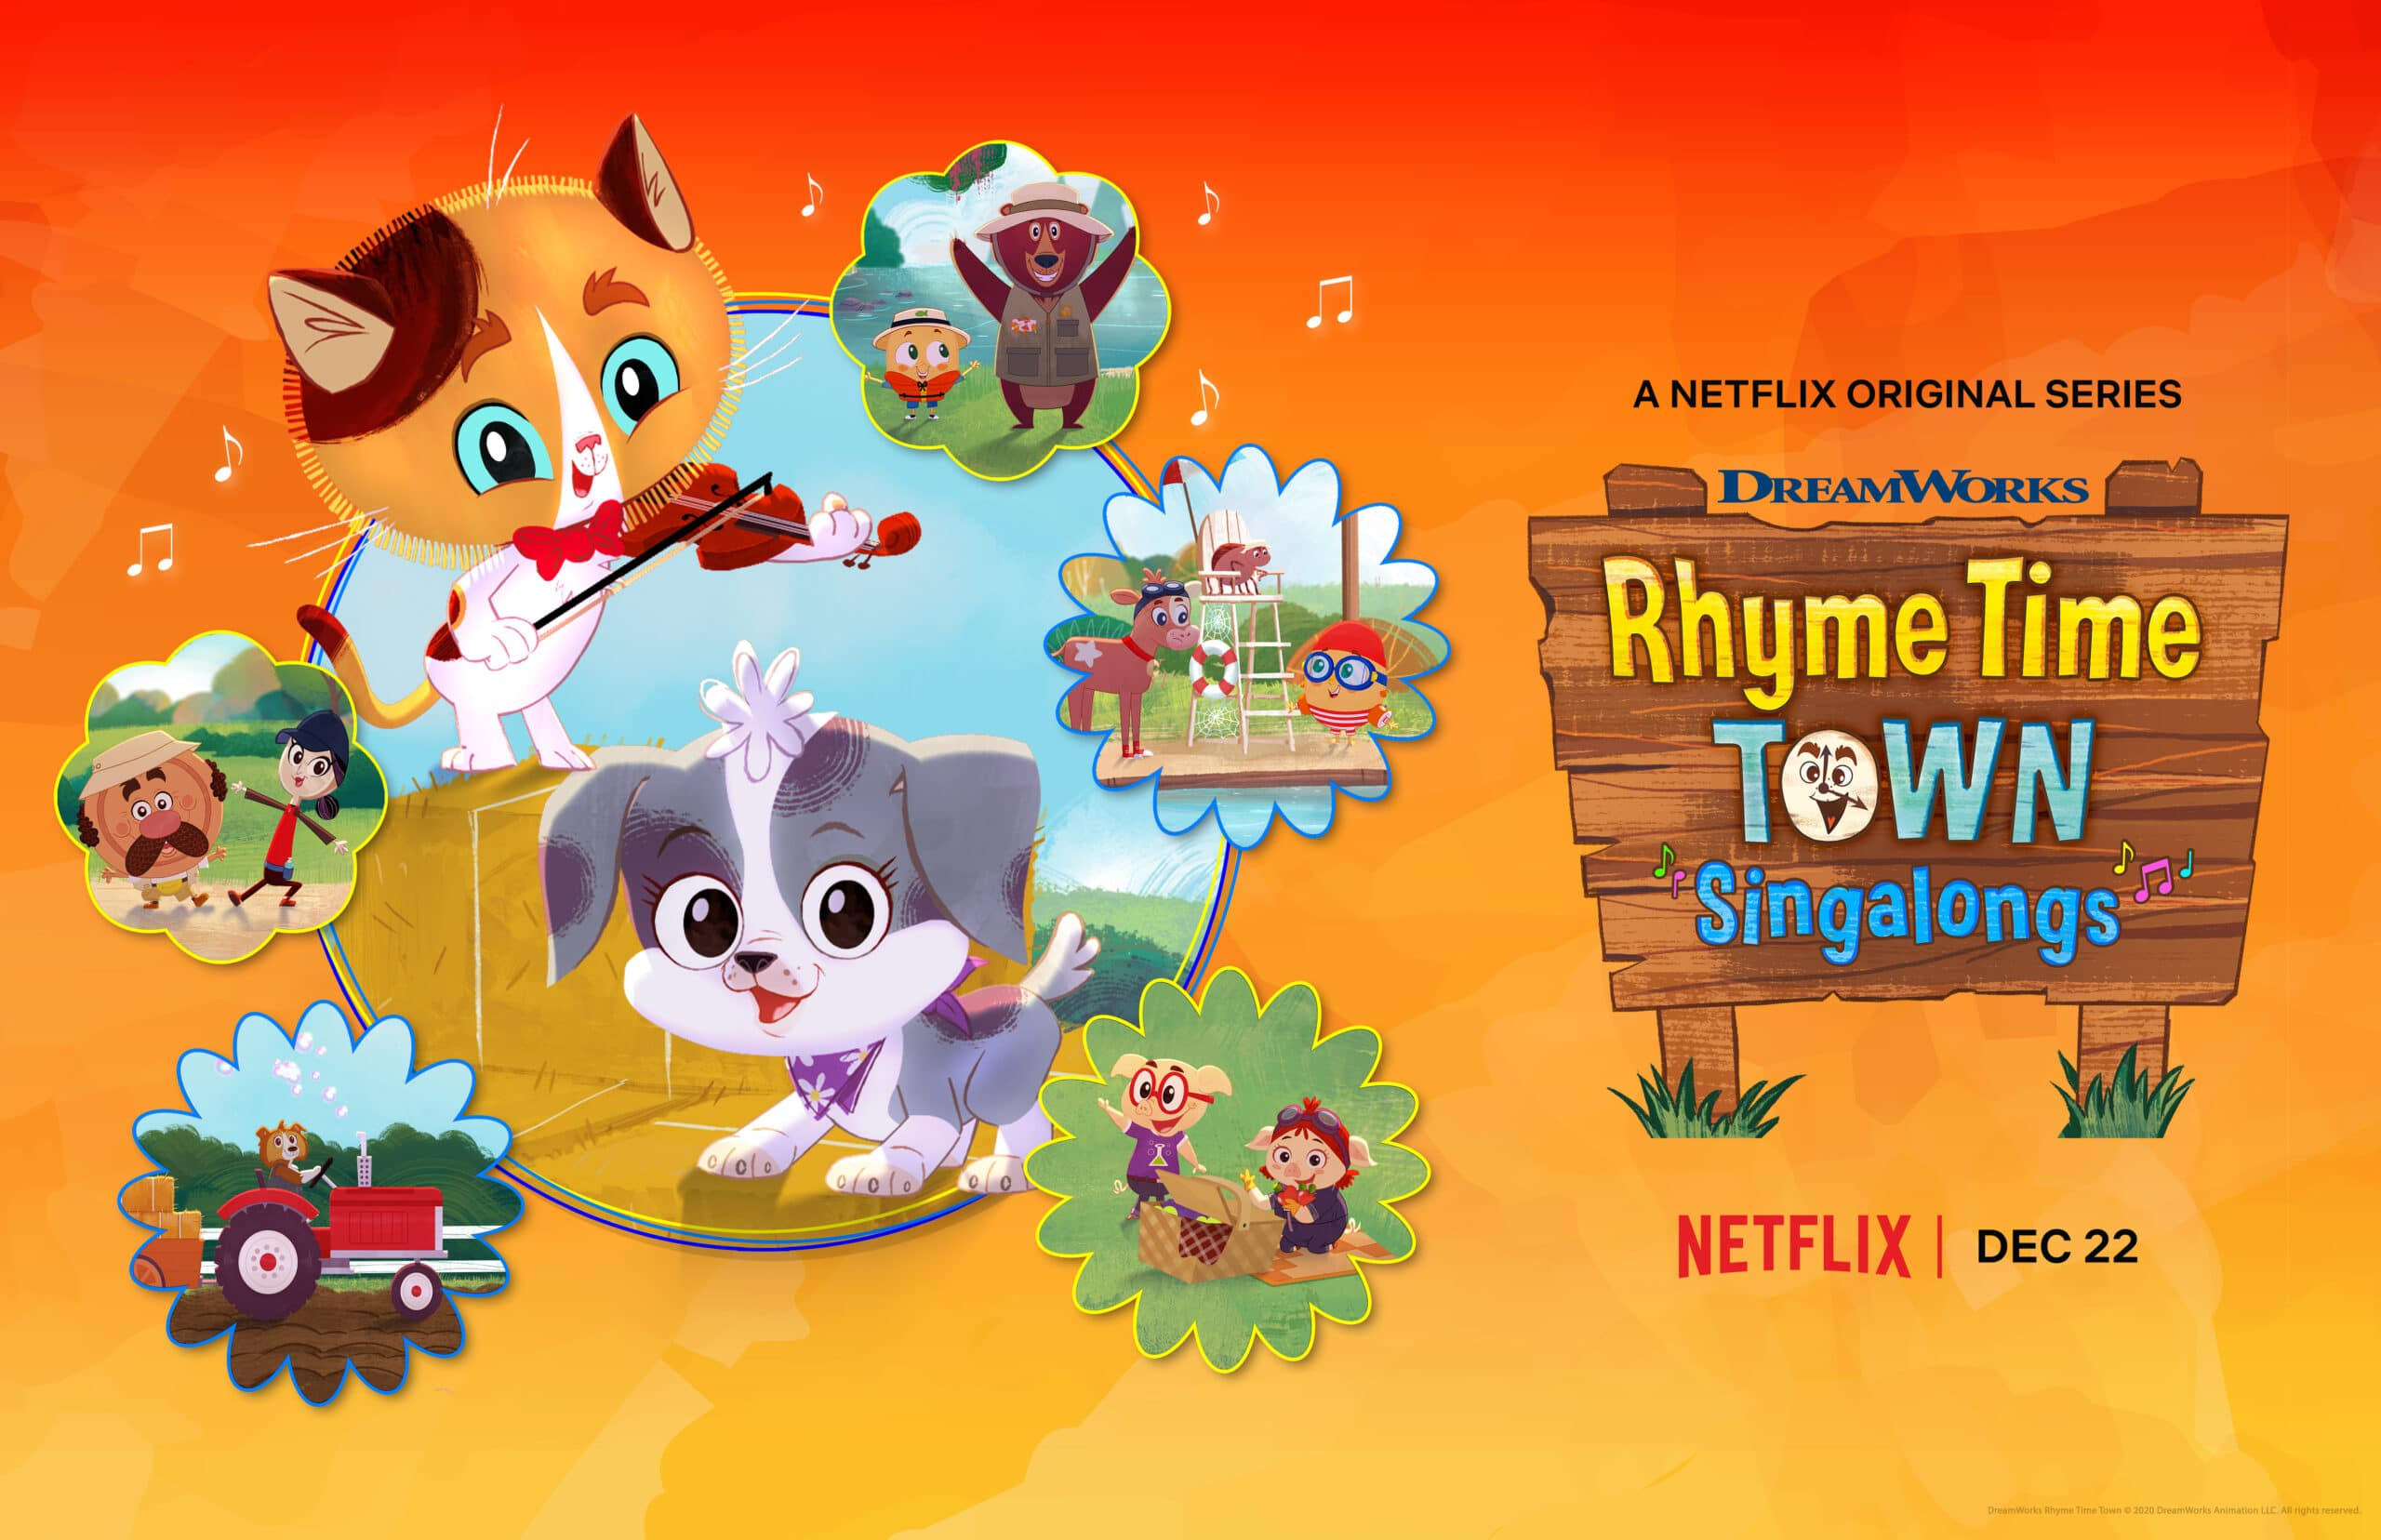 Rhyme Time Town Singalongs. Discover more about your favorite characters from the colorful world of Rhyme Time Town. Join Daisy and Cole in 10 all-new singing adventures through the Rhyme Time Town Singalongs,coming to Netflix on December 22nd!